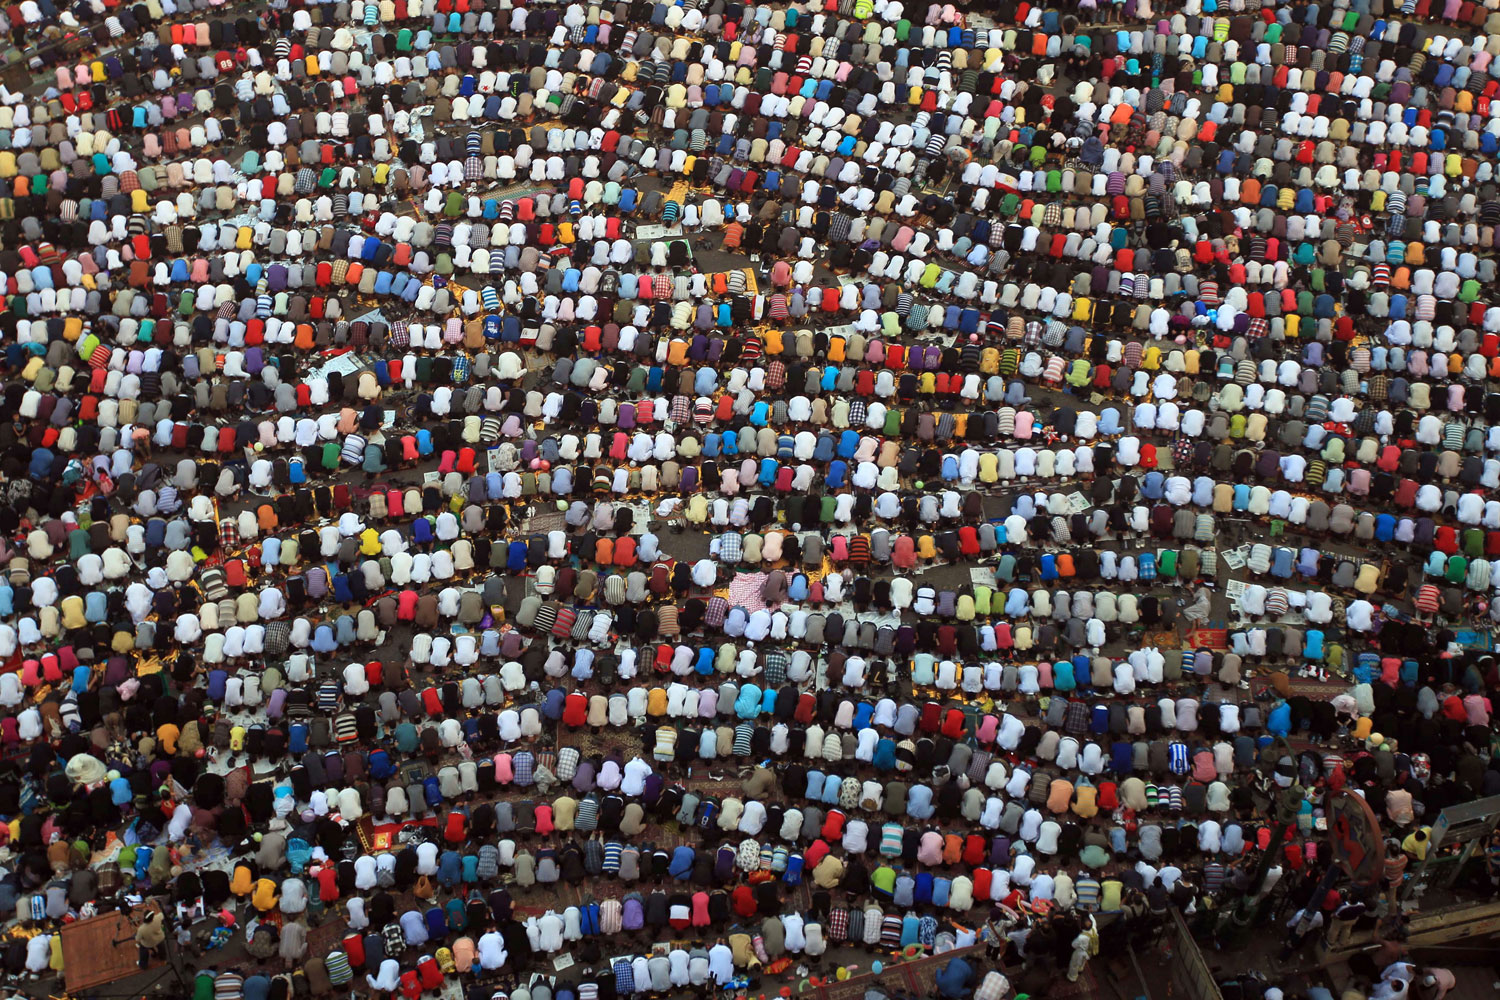 August 30, 2011. Thousands of Muslims gather in Tahrir Square in Cairoto pray and mark 'Id al-Fitr, the end of fasting during Ramadan. The 'Id was the first since revolutionaries demonstrating in the square deposed Egyptian President Hosni Mubarak in February and triggered similar protests against dictators throughout the Arab world.